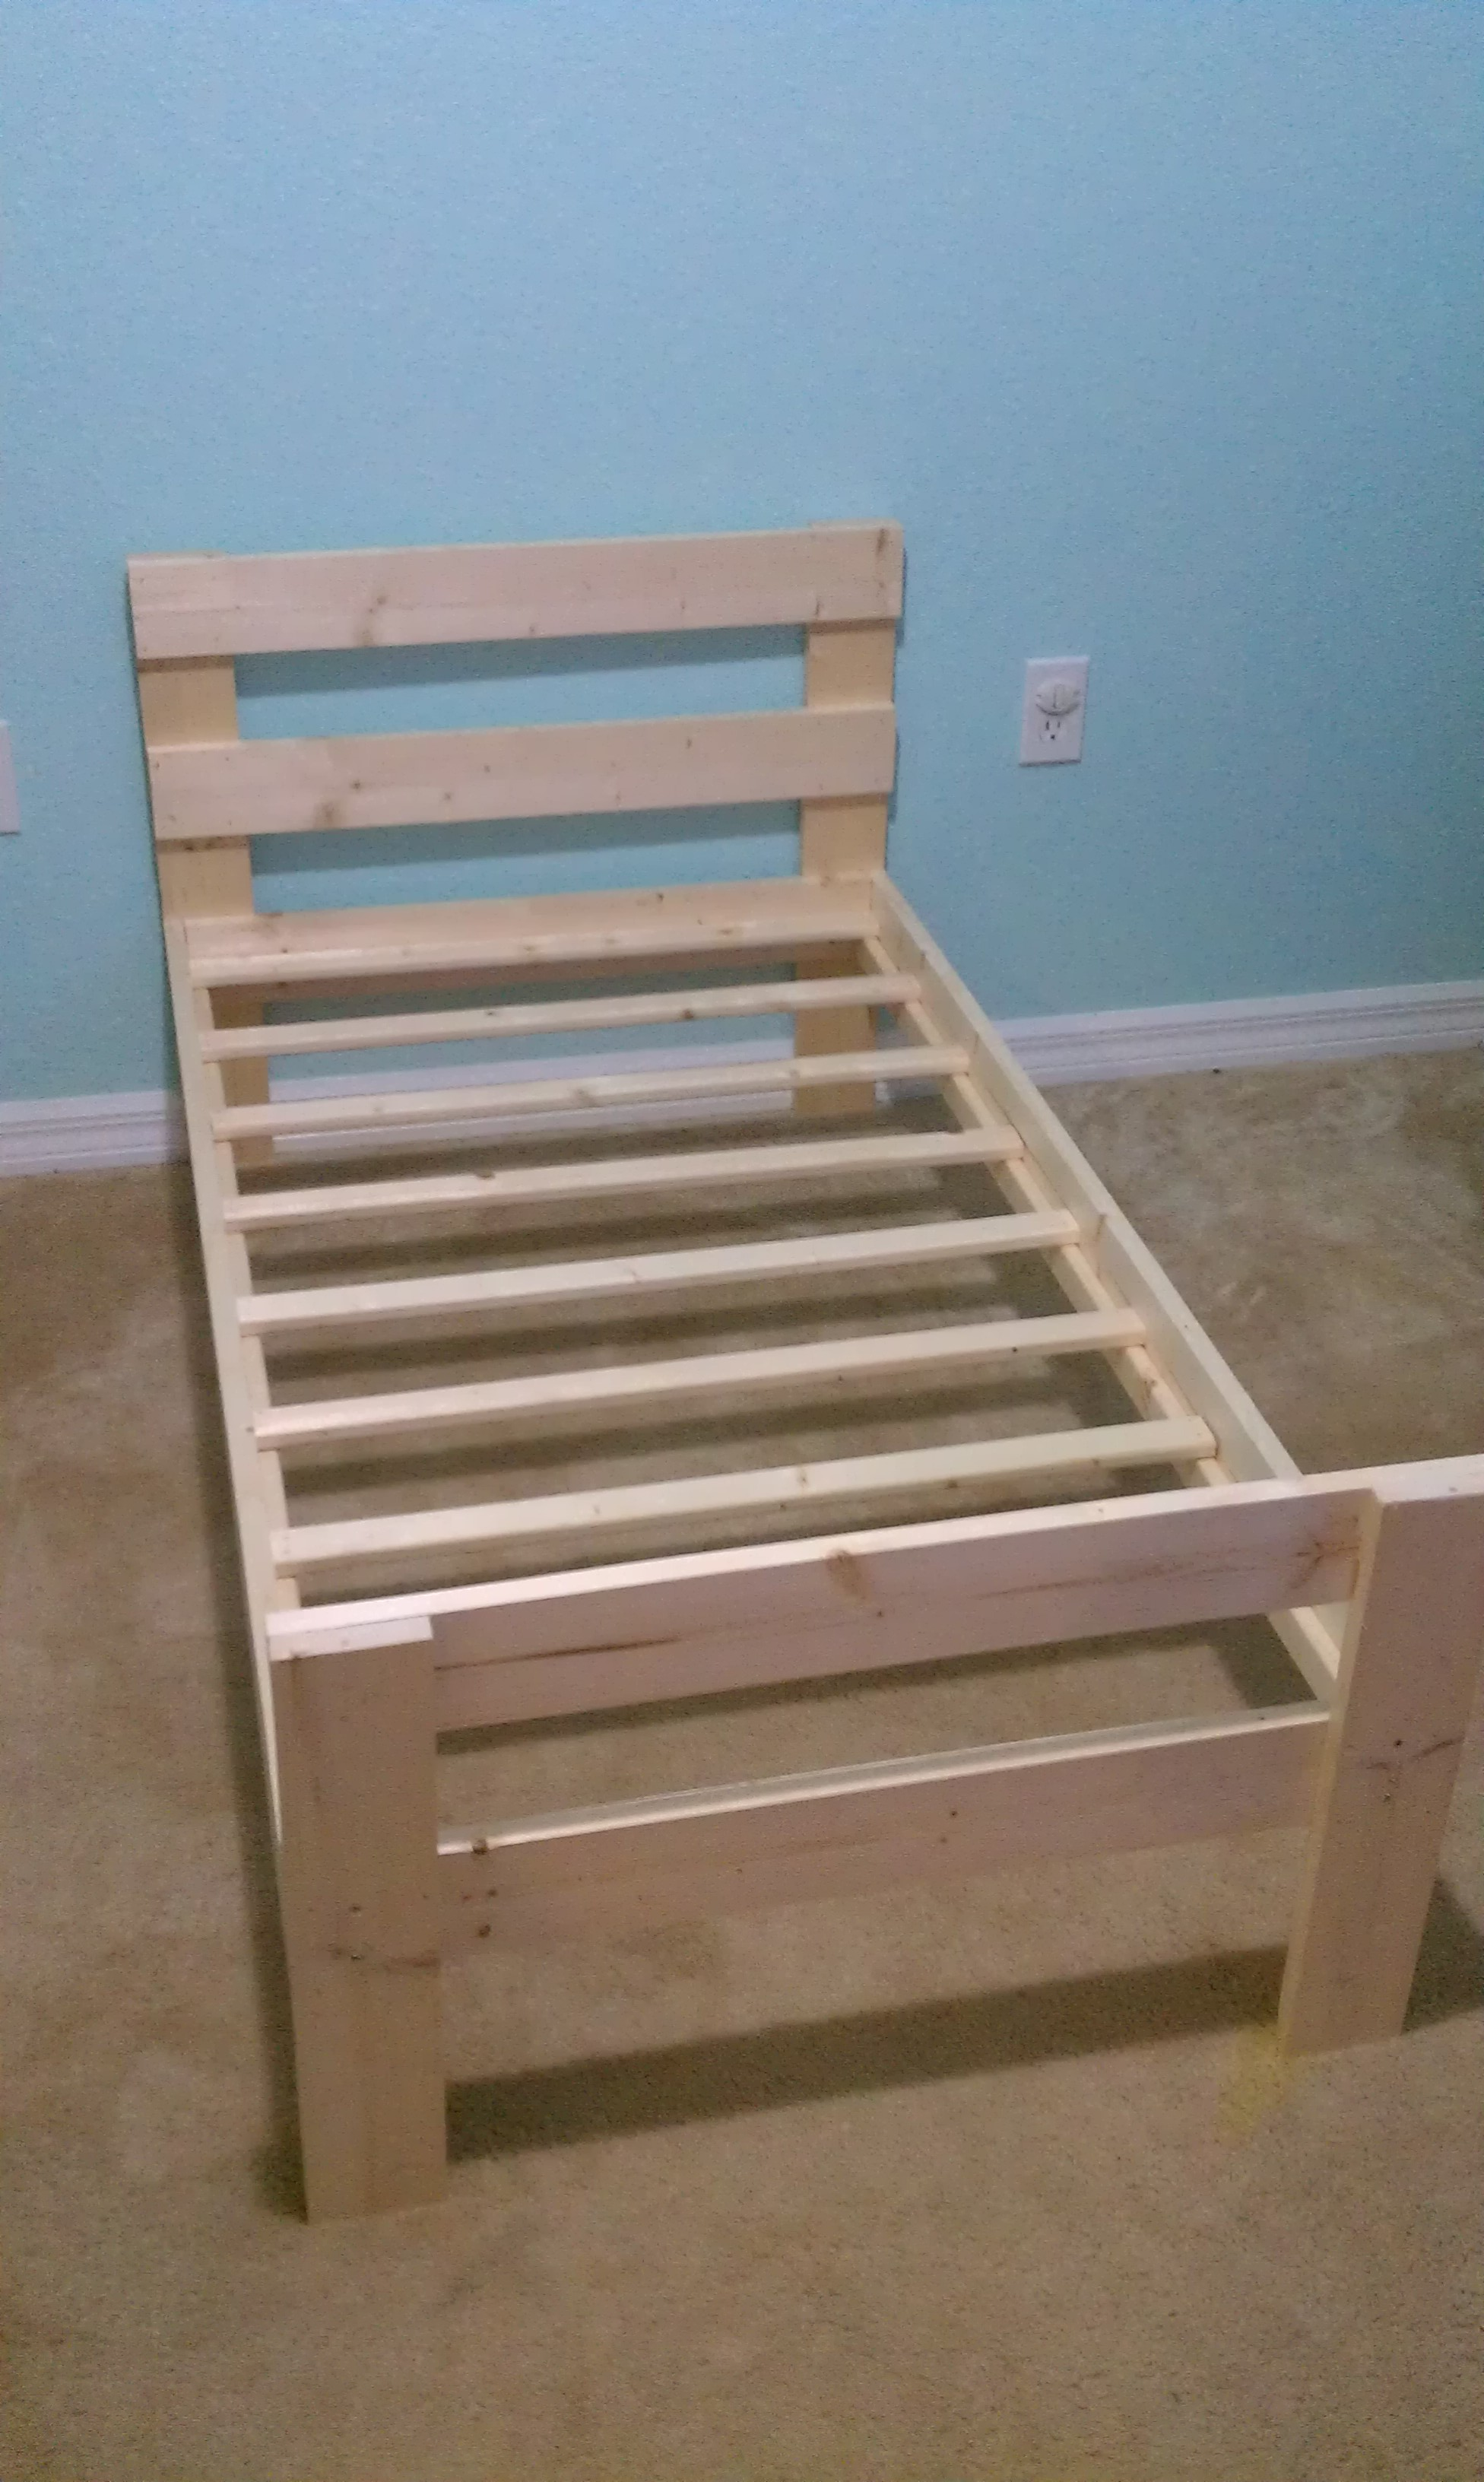 Simple Stylish Toddler Bed For Under 40 5 Steps With Pictures Instructables